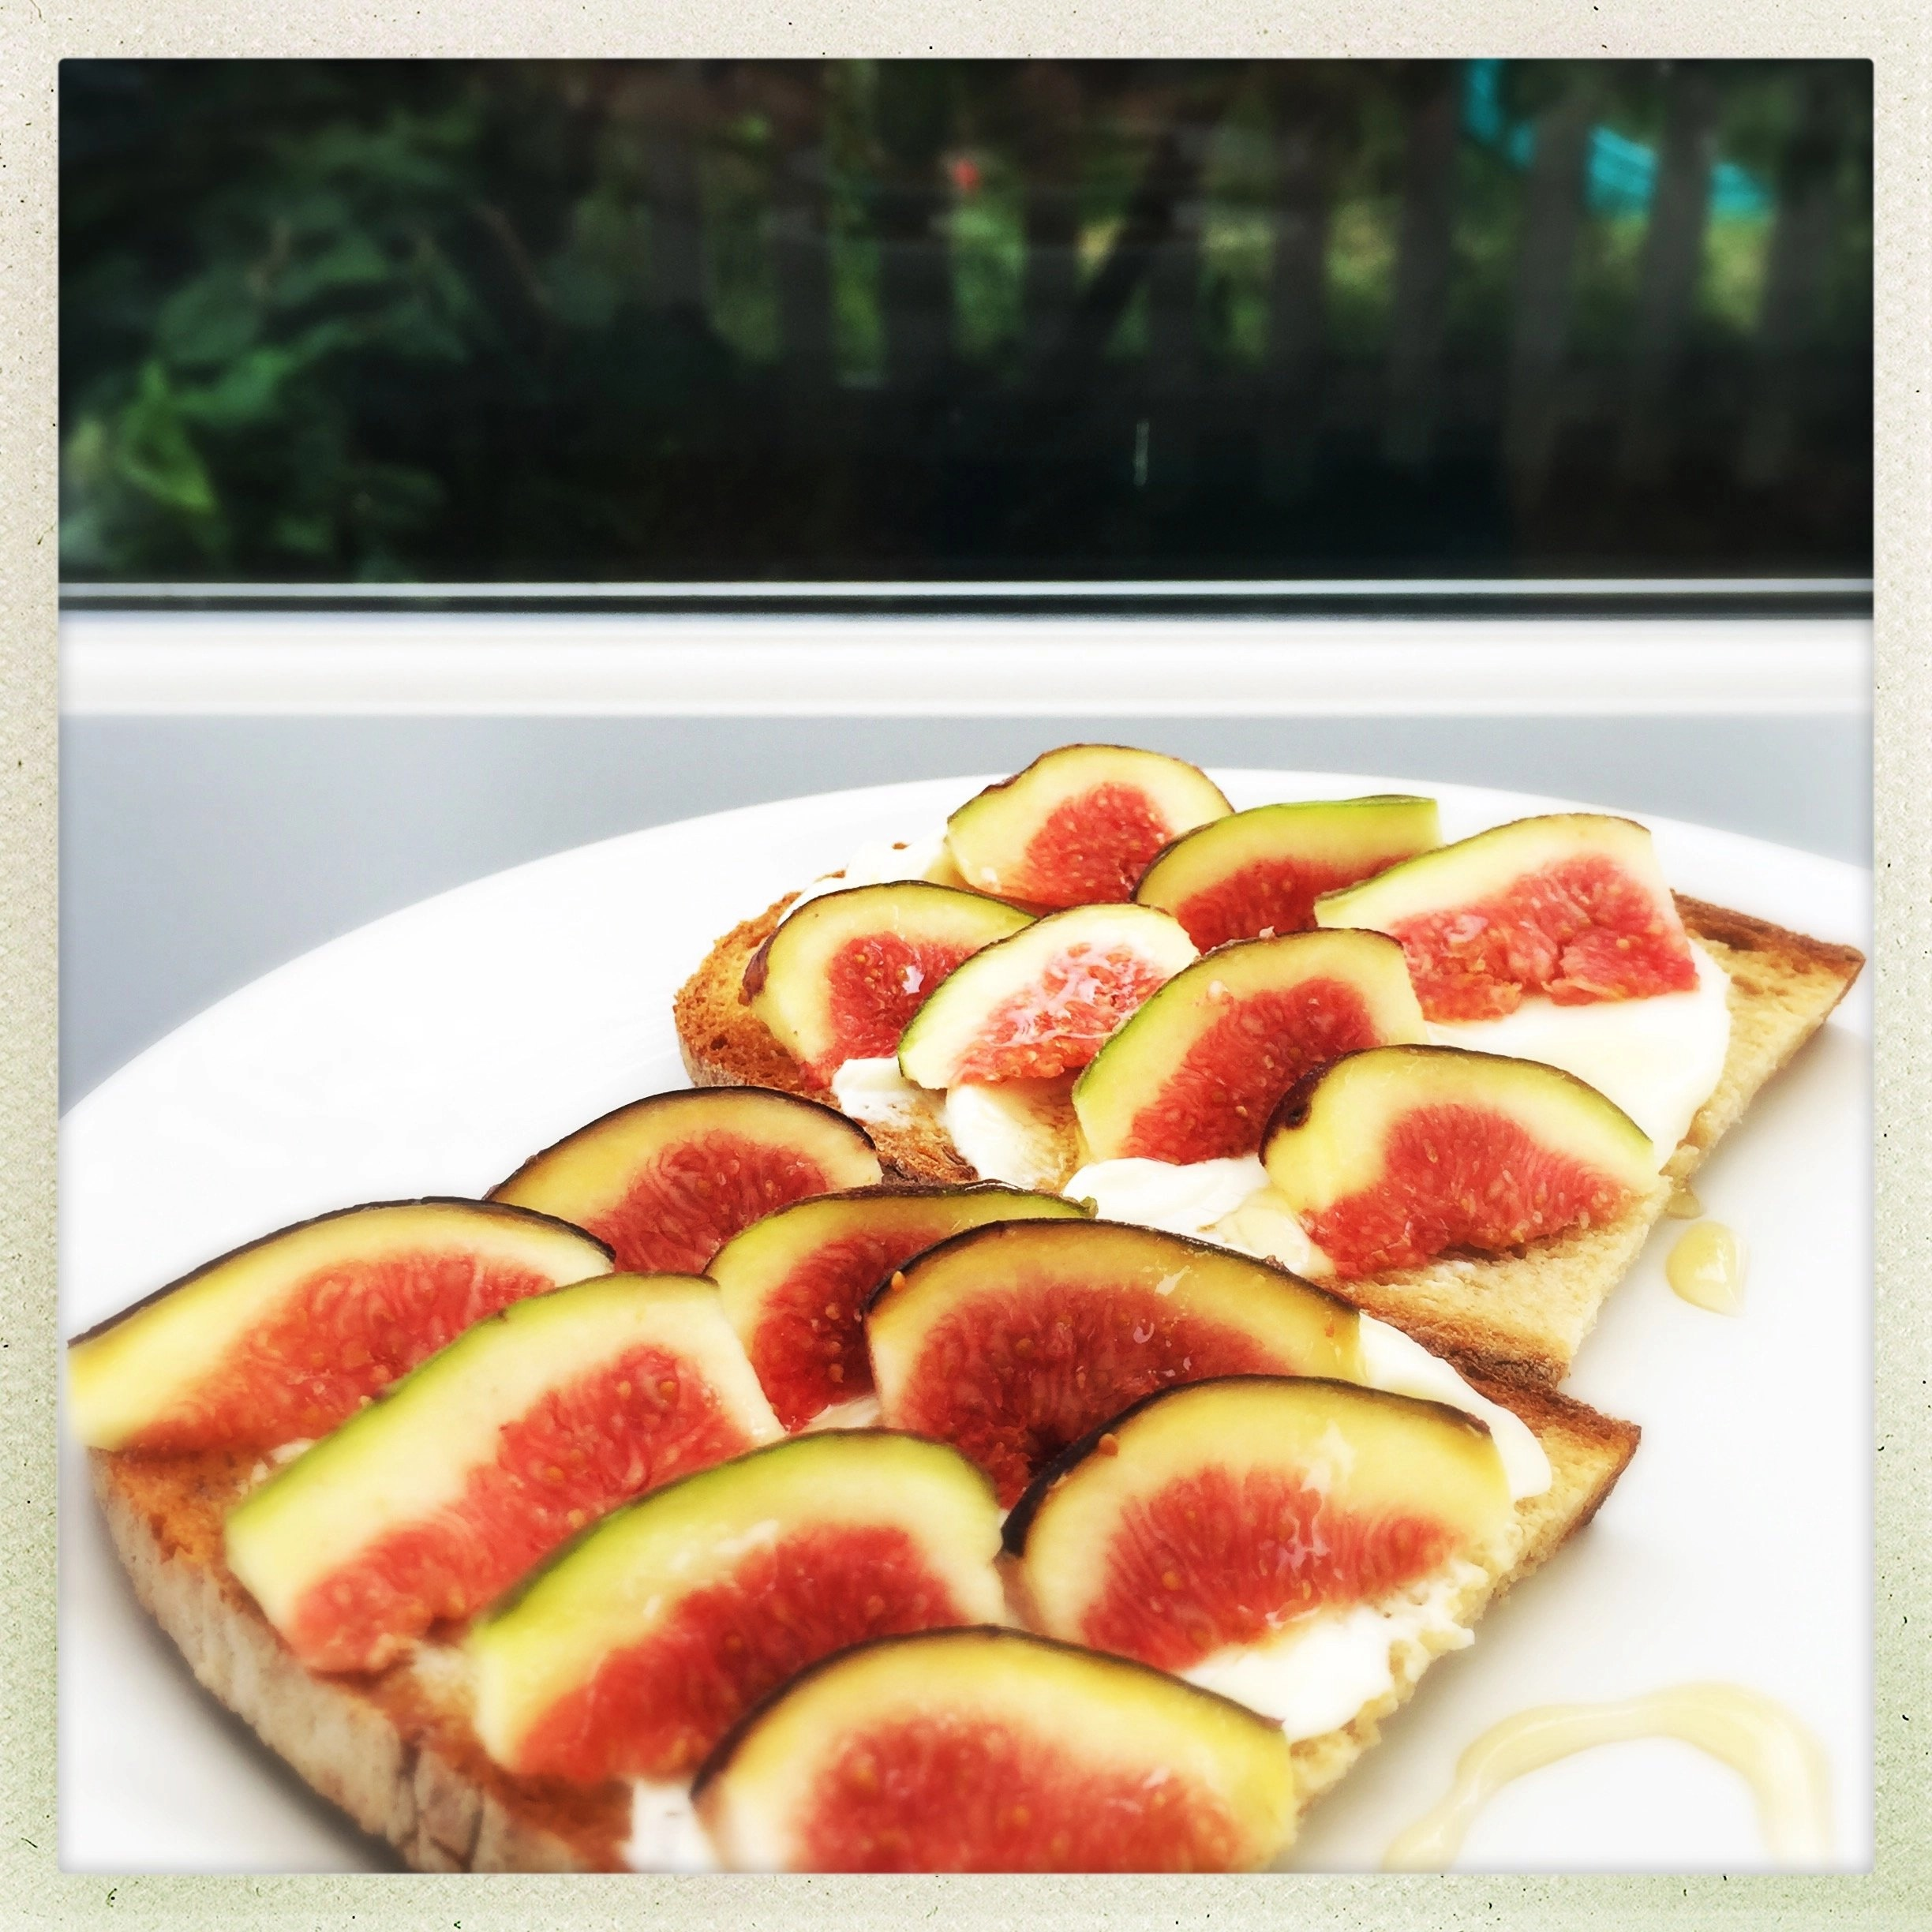 Sourdough toast with cream cheese and figs